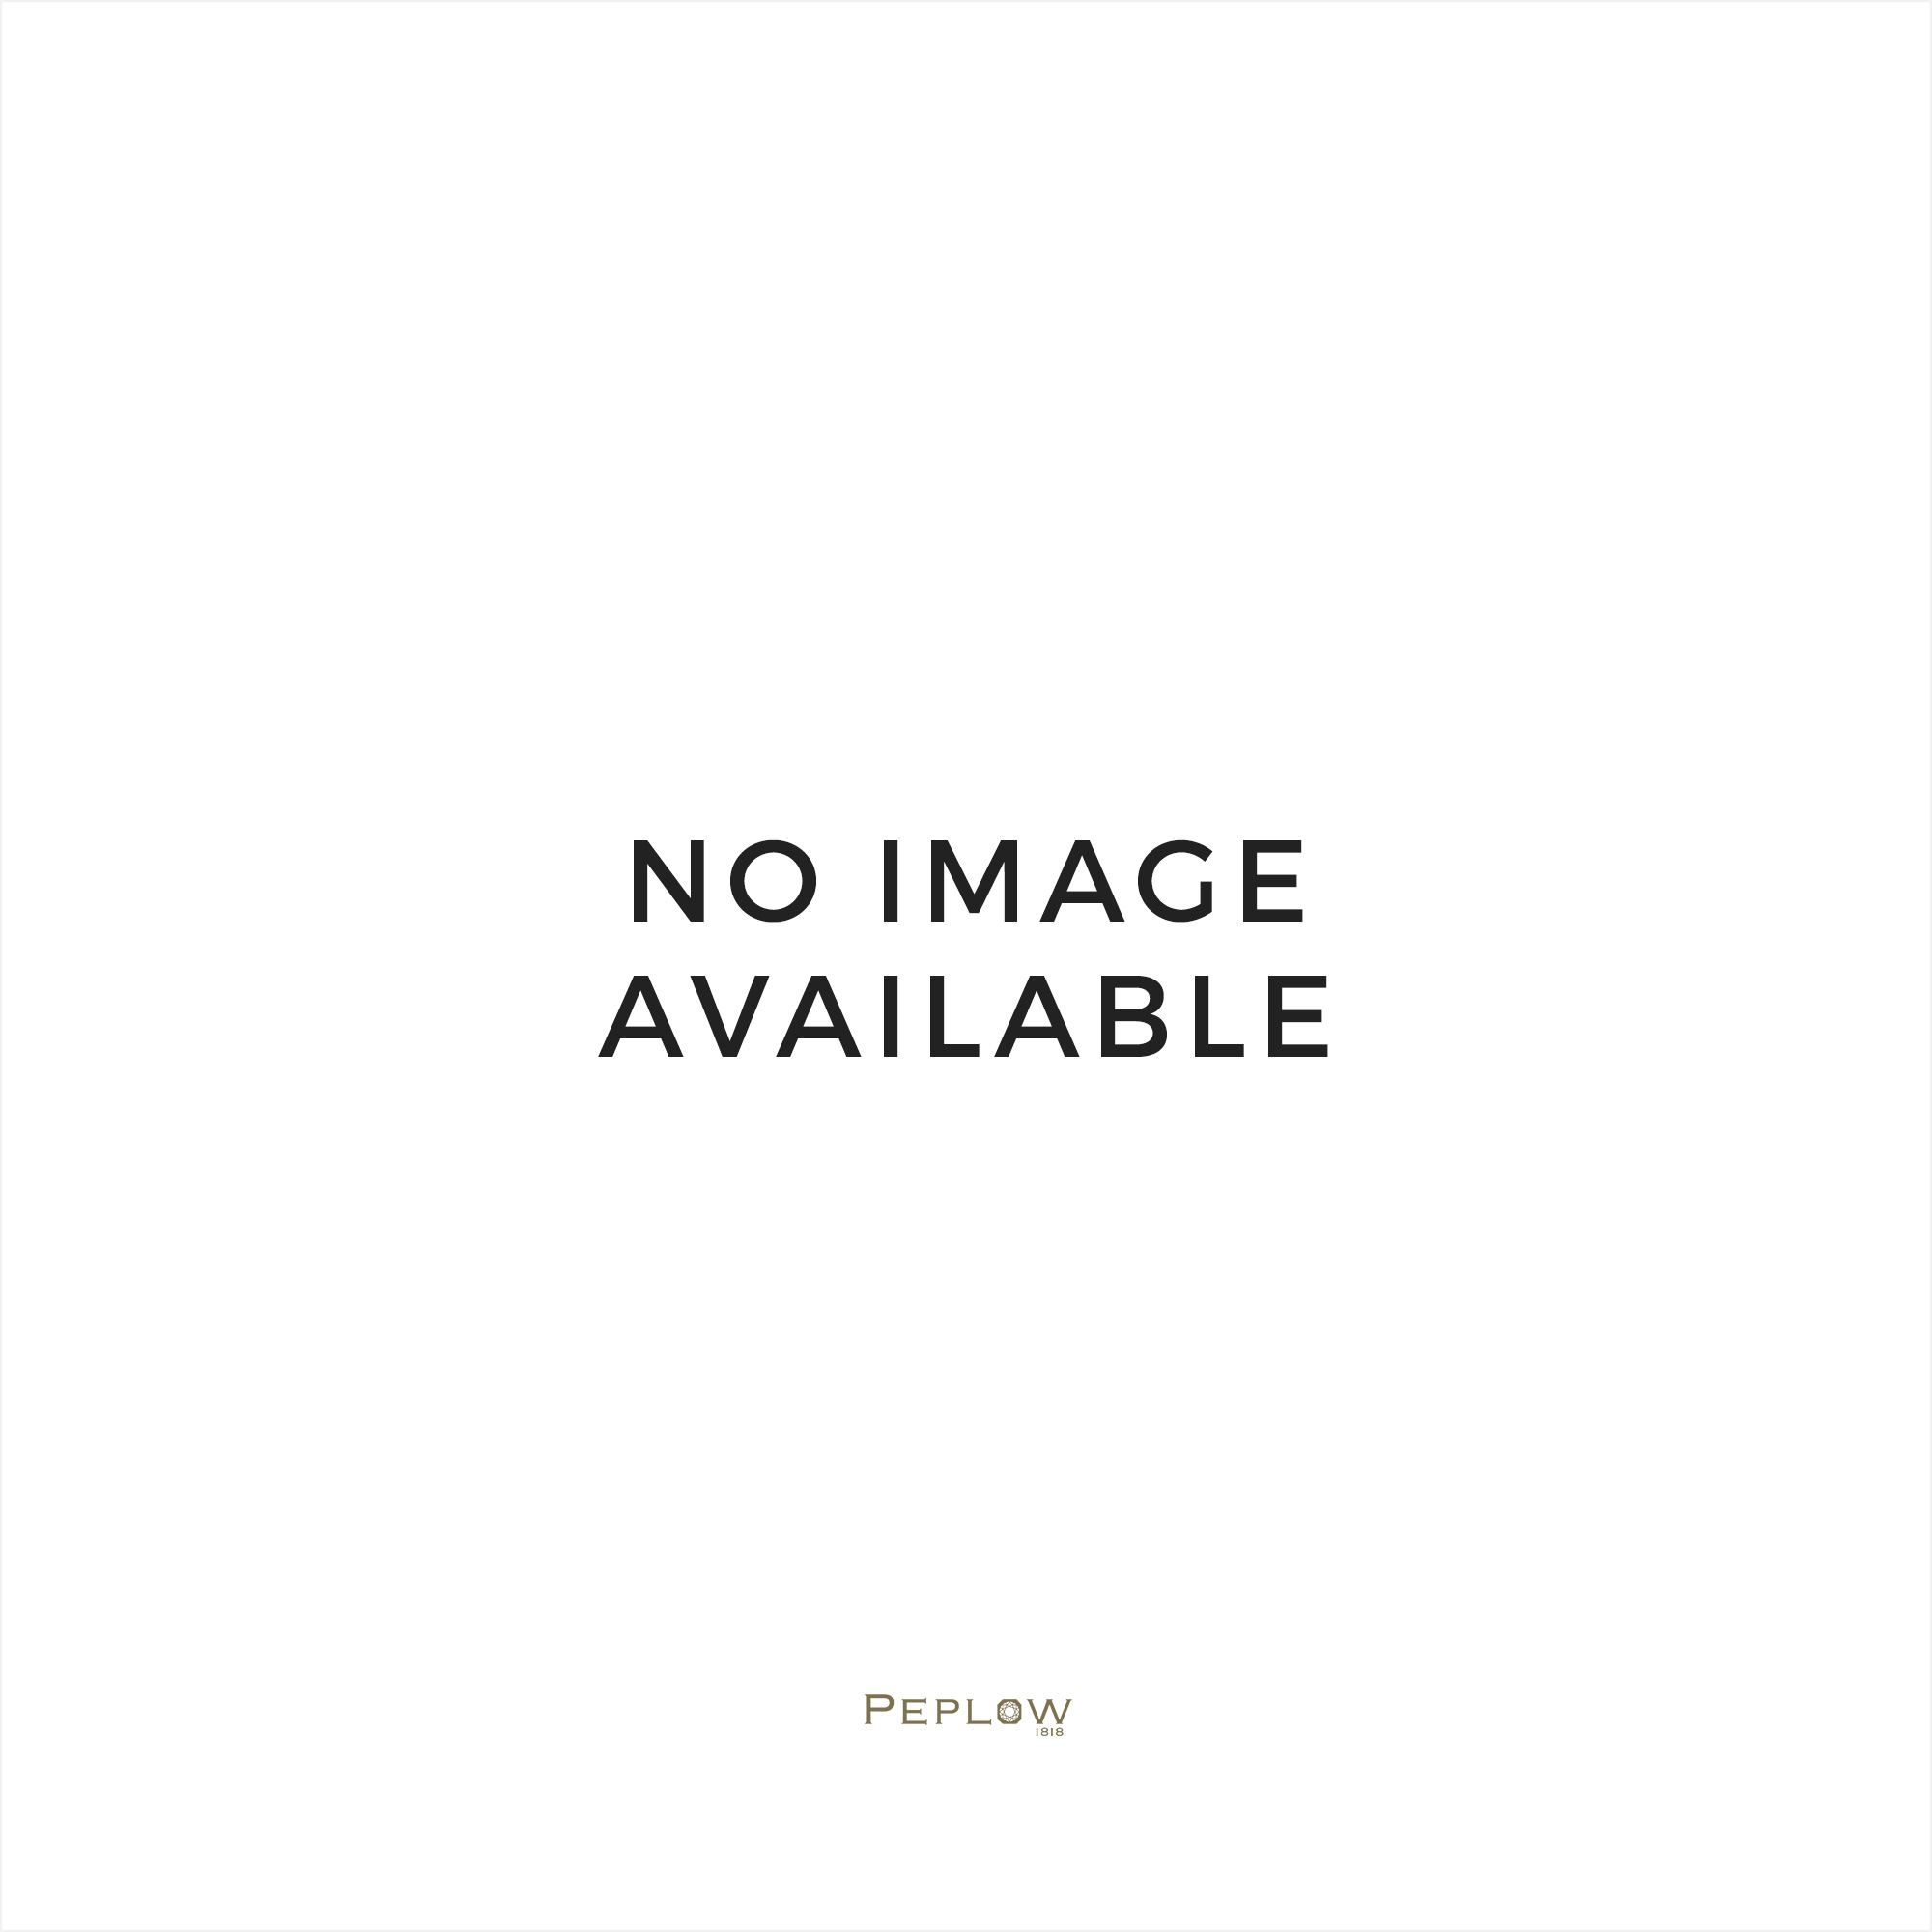 Ladie steel large silver dial strap watch, RG239JX9